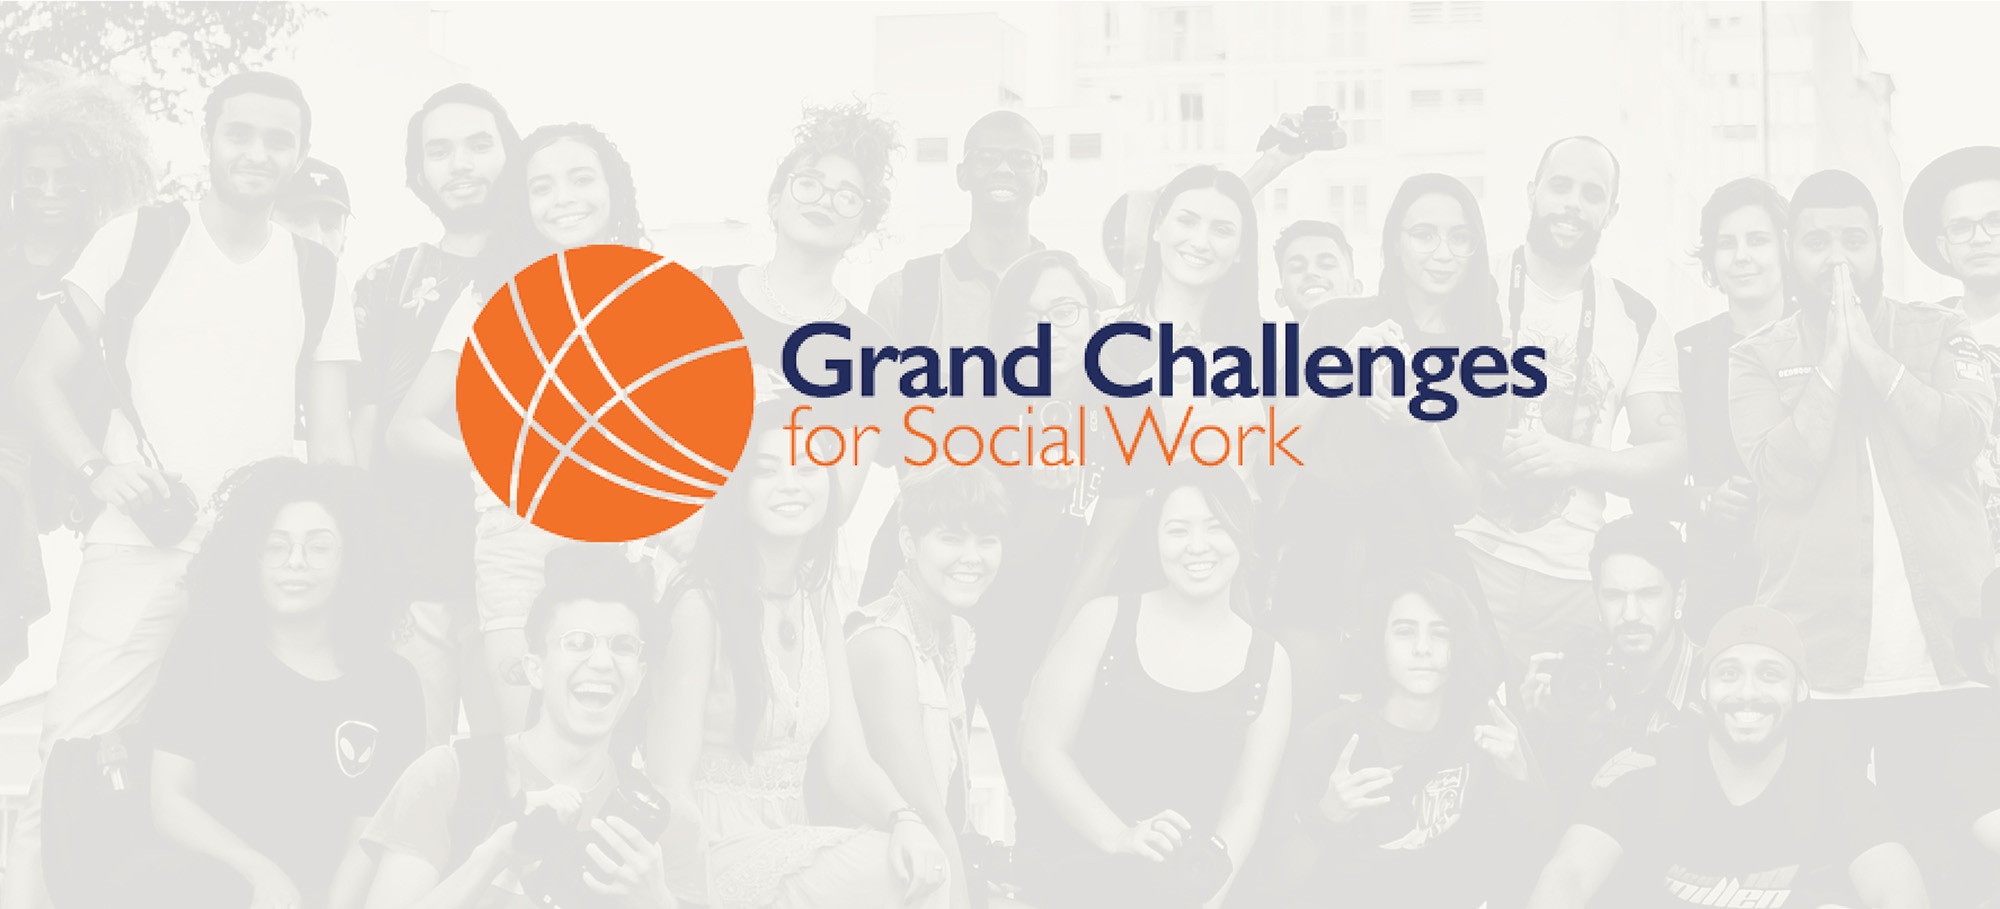 The Grand Challenges for Social Work logo on top of a faint photo of smiling people